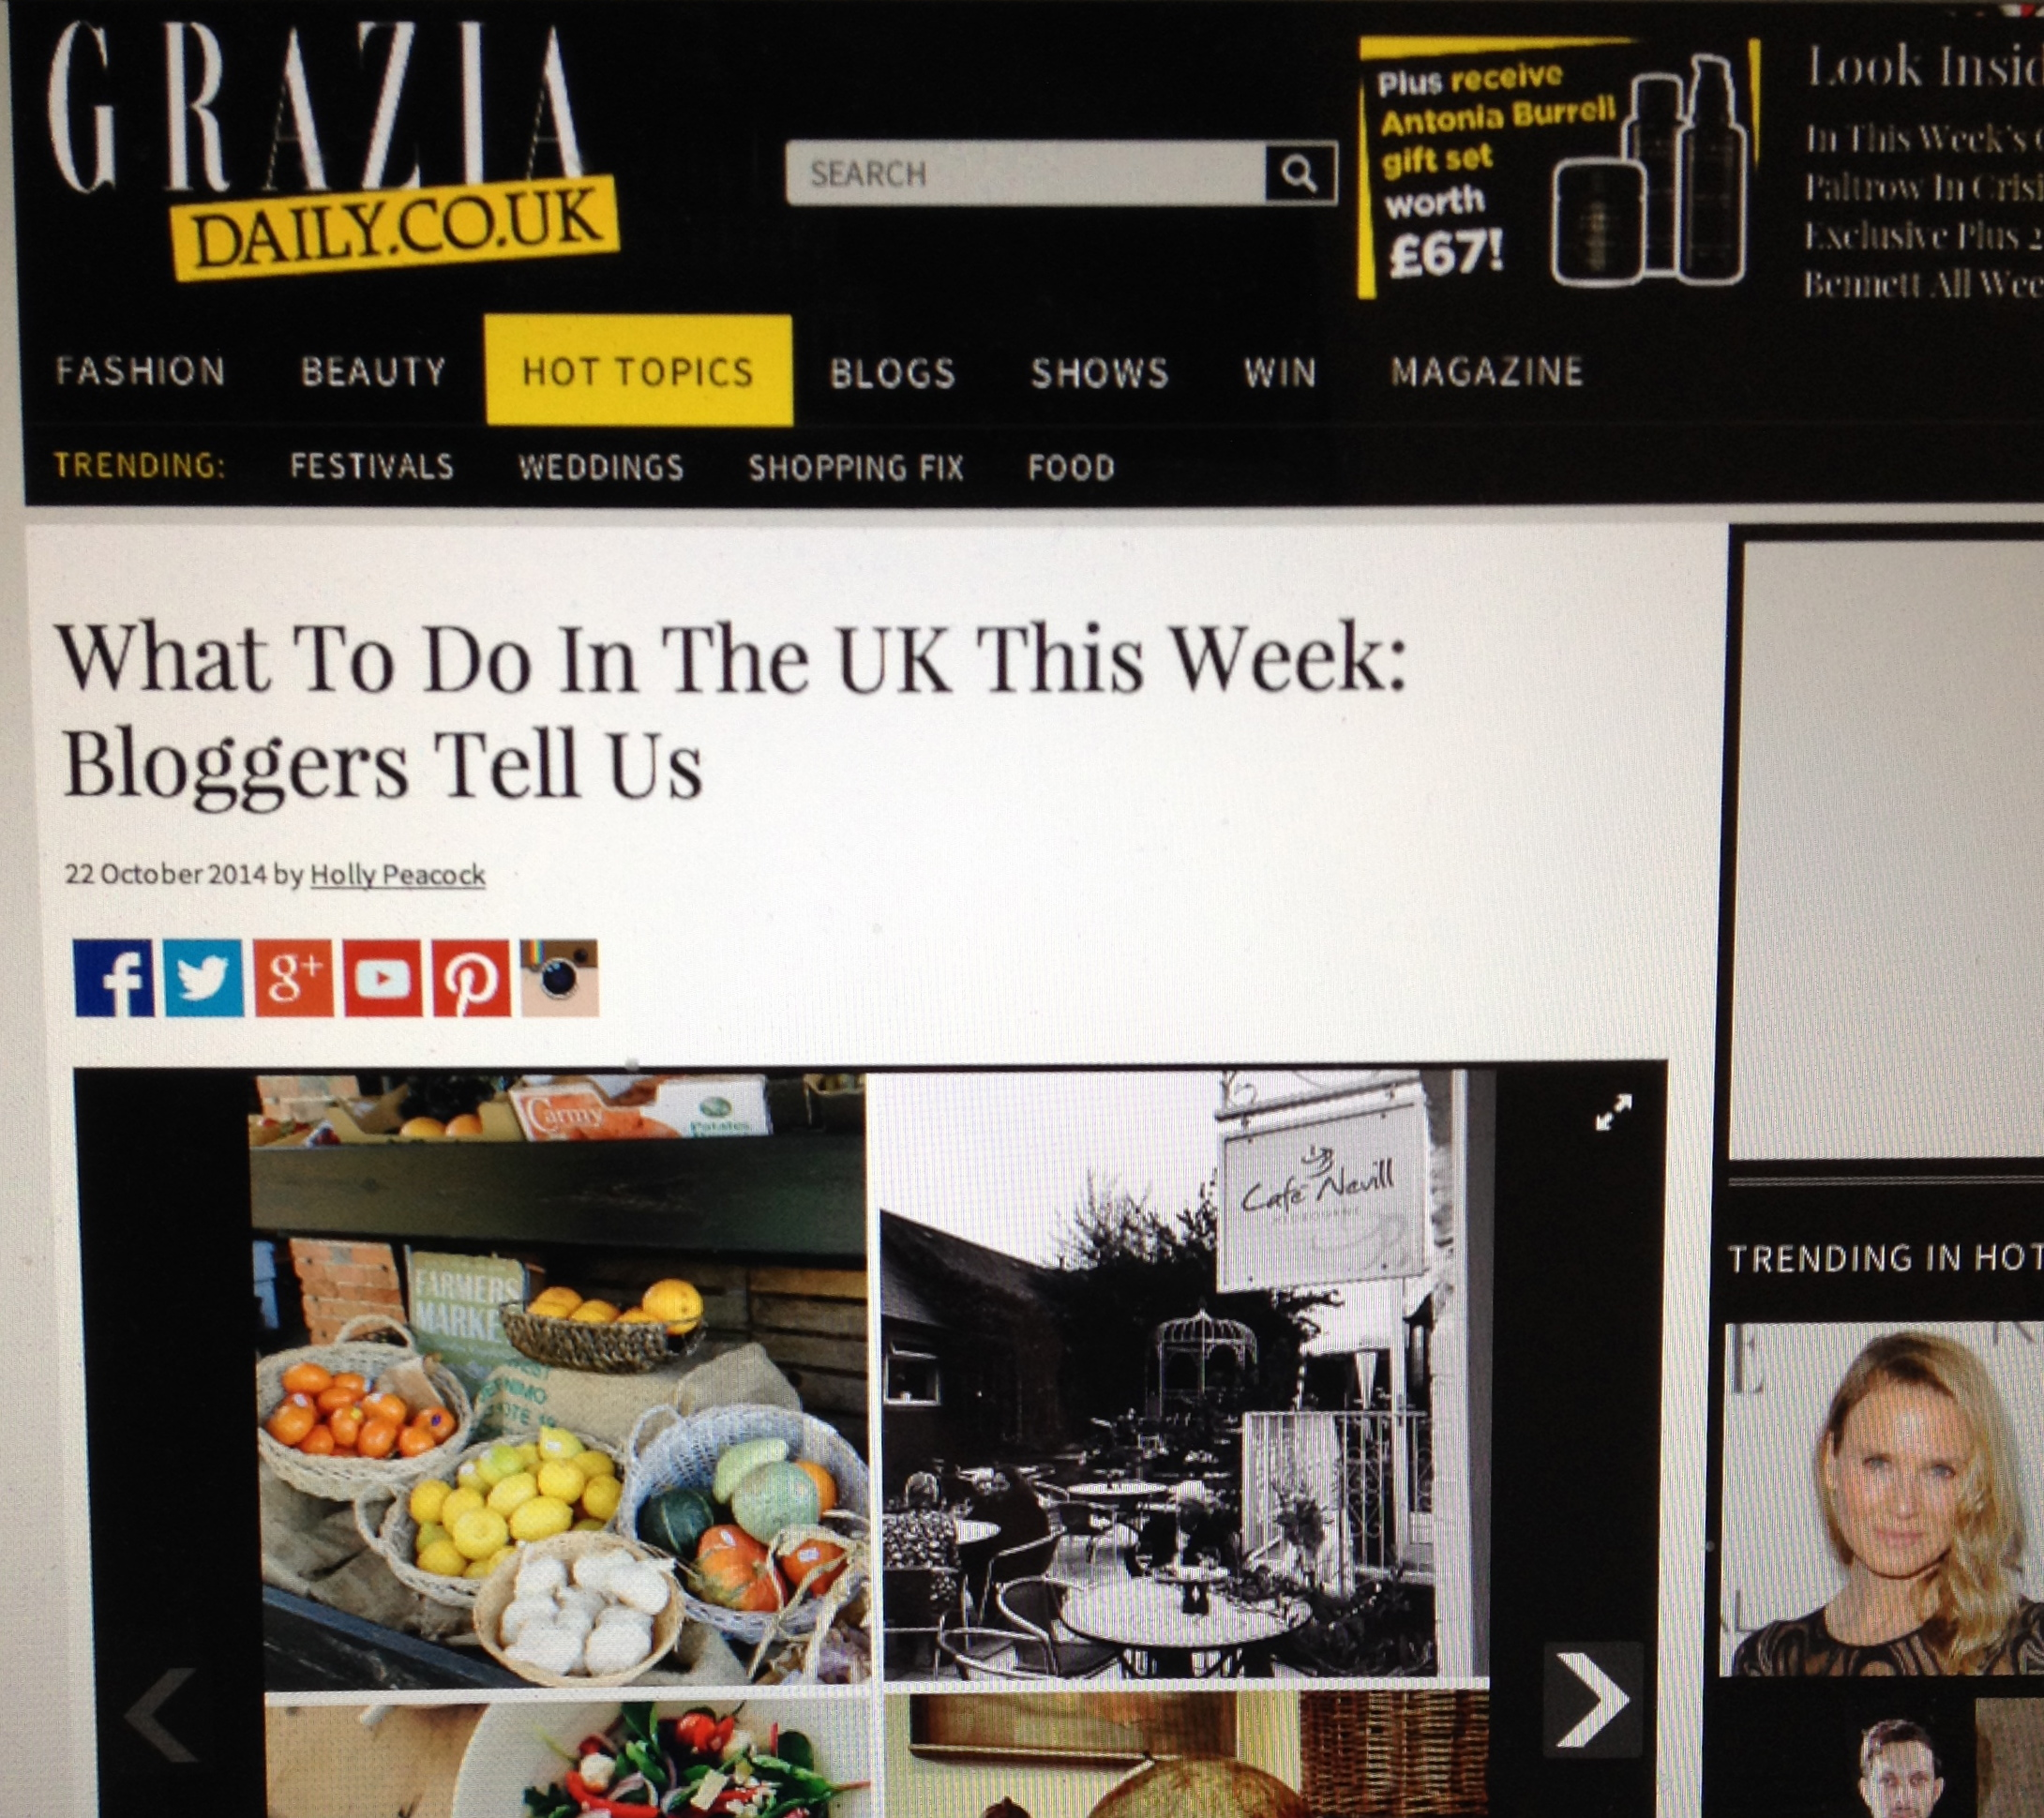 Grazia Bloggers Around the UK Surrey